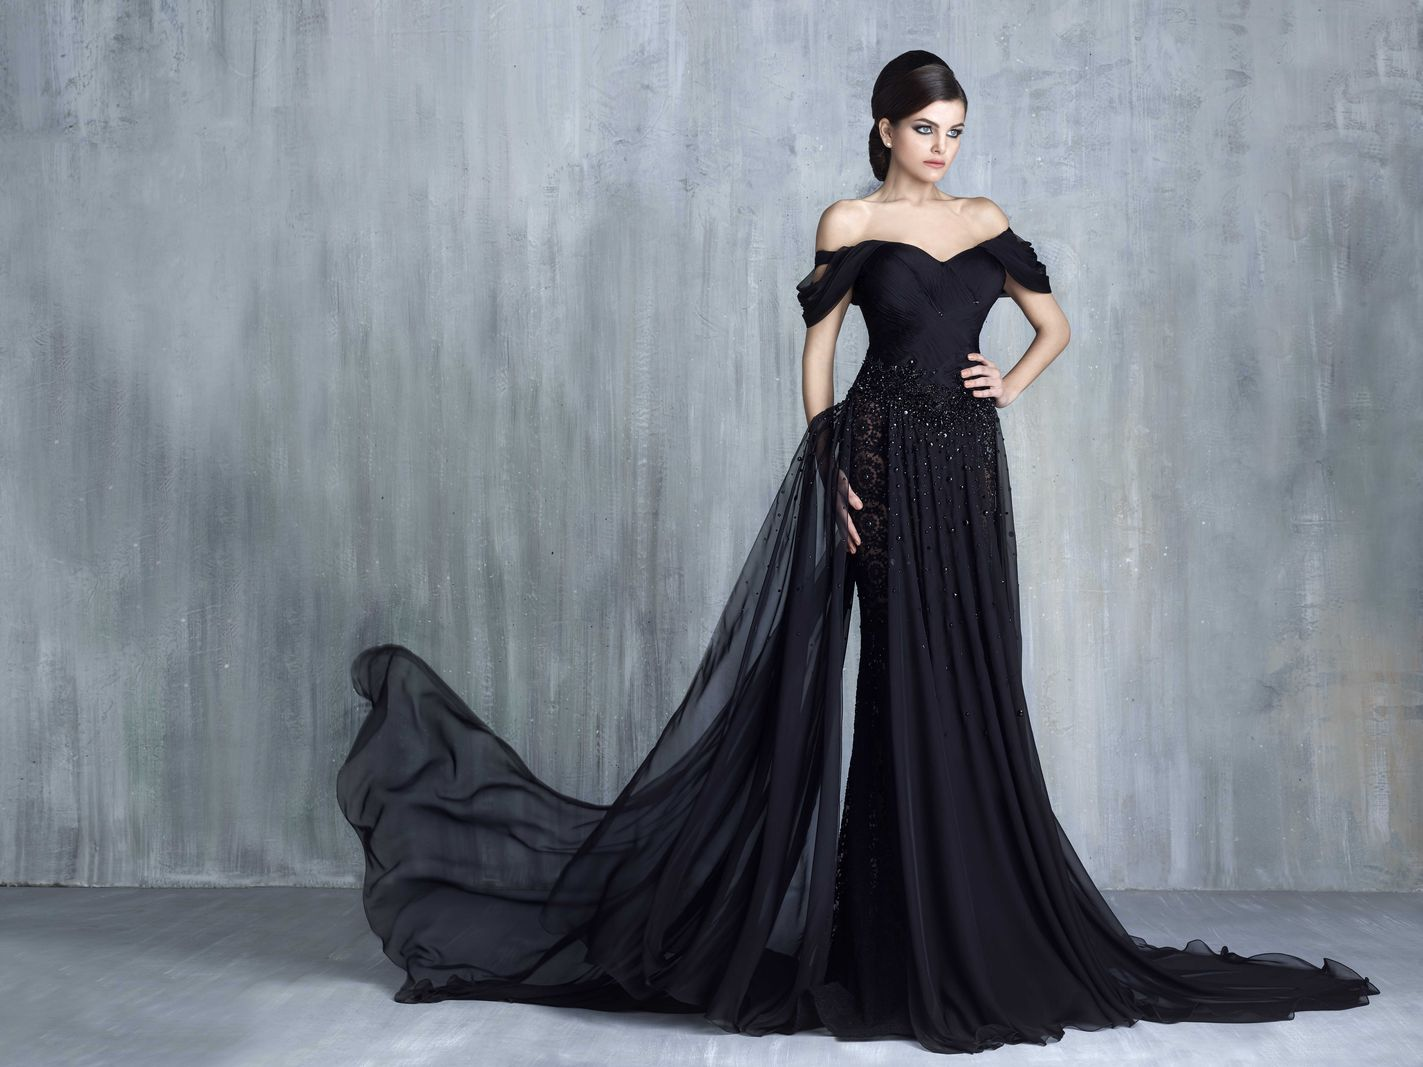 Evening dresses and gowns I Tony Chaaya I Lebanon